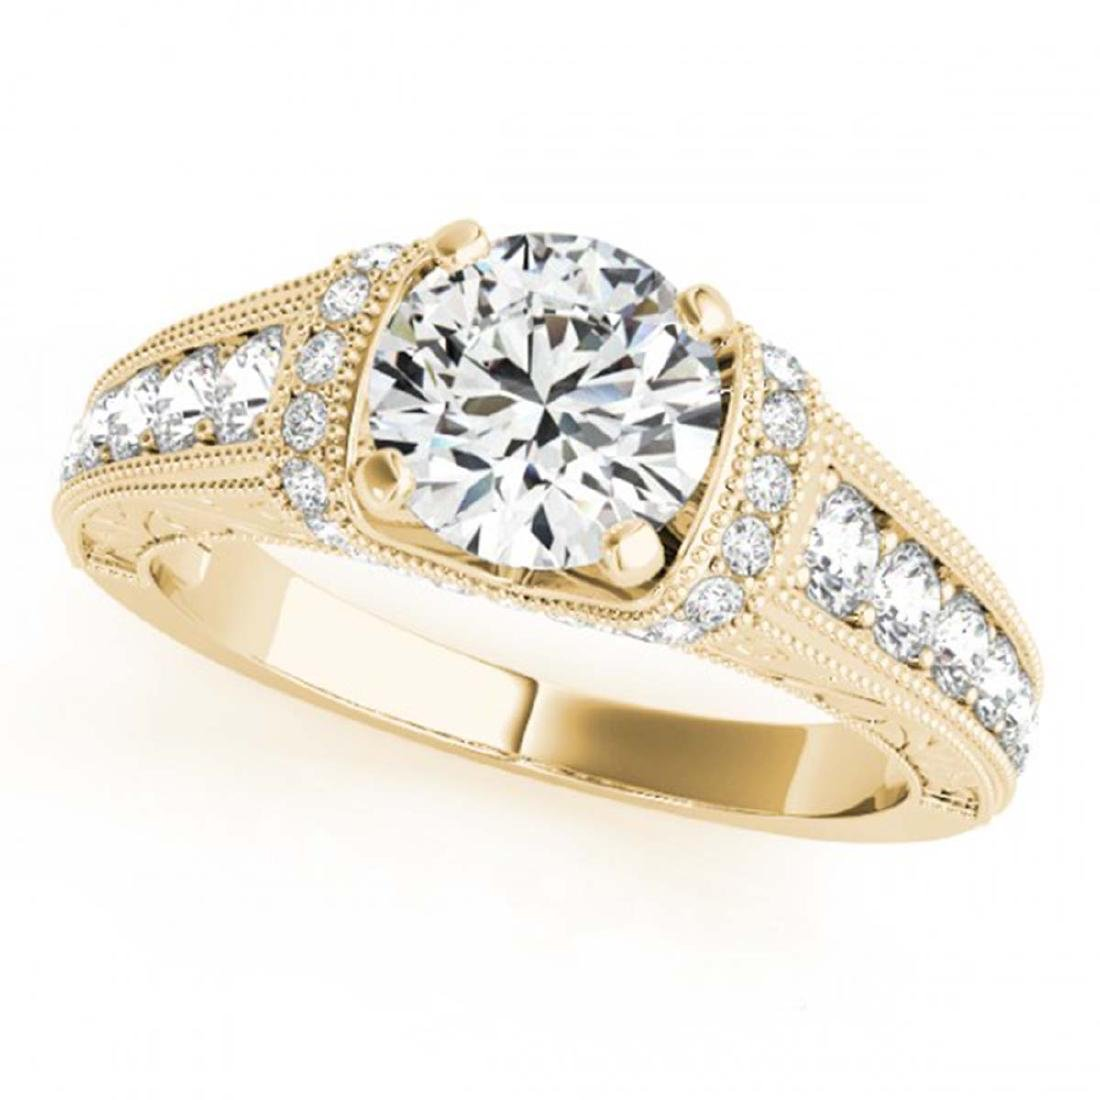 1.25 ctw VS/SI Diamond Solitaire Ring 14K Yellow Gold -